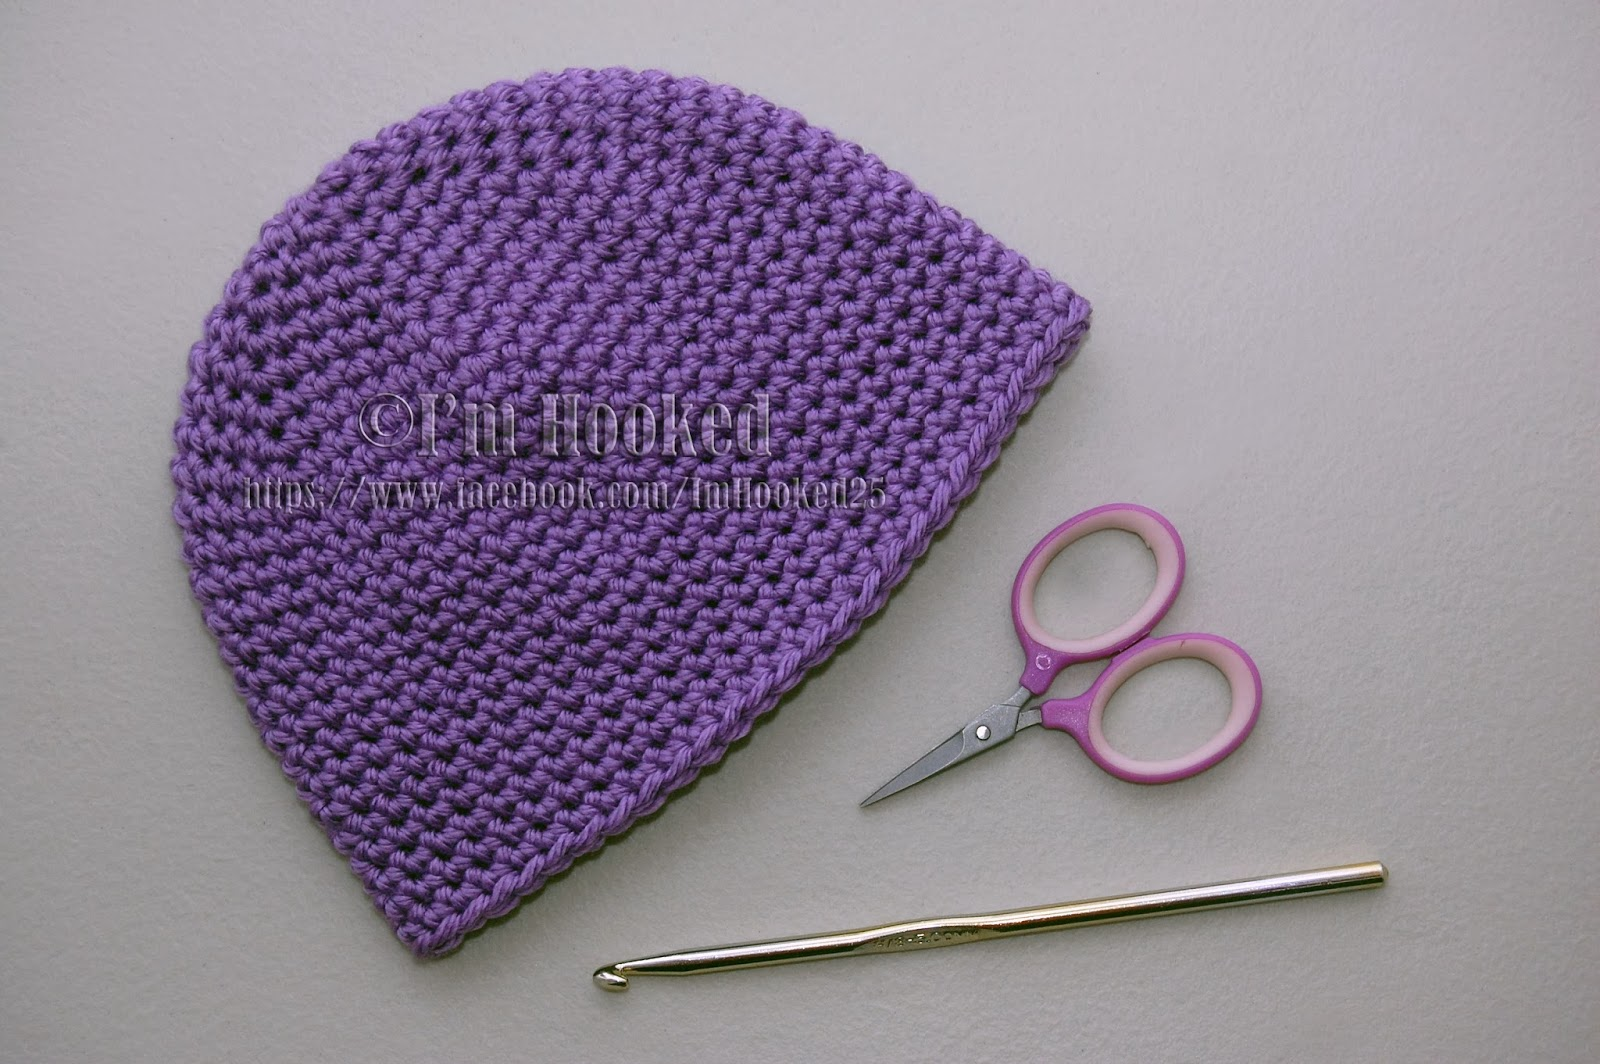 Crochet Basic Patterns : Free Crochet Pattern: Basic Beanie (Single Crochet)